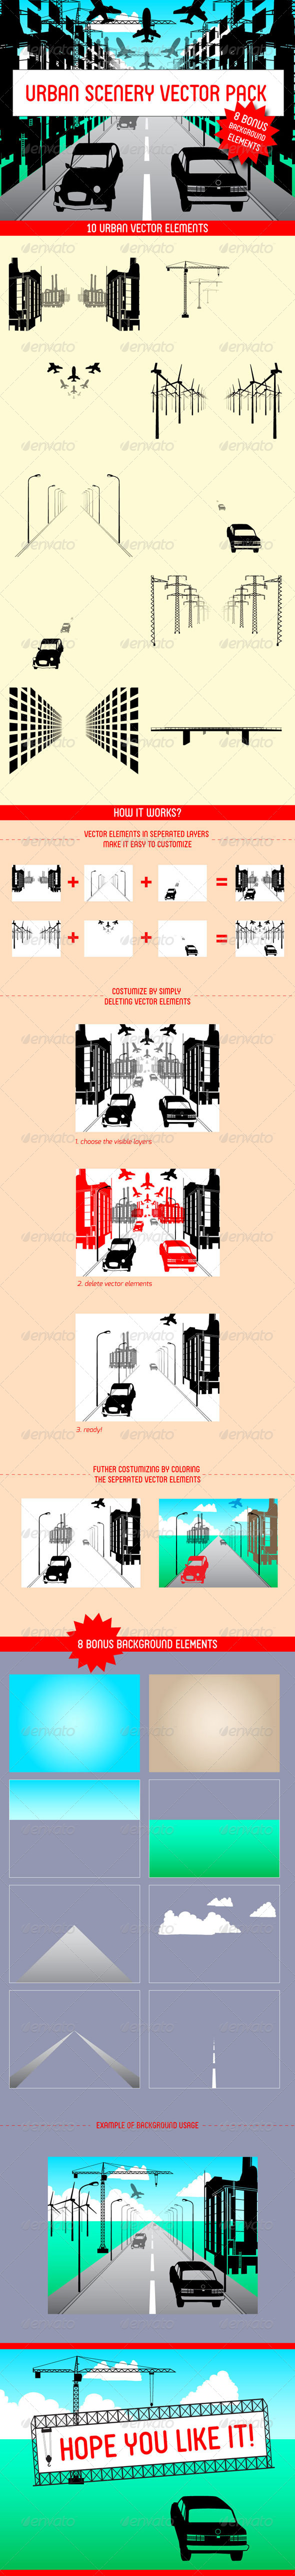 GraphicRiver Urban Scenery Vector Pack 4580533